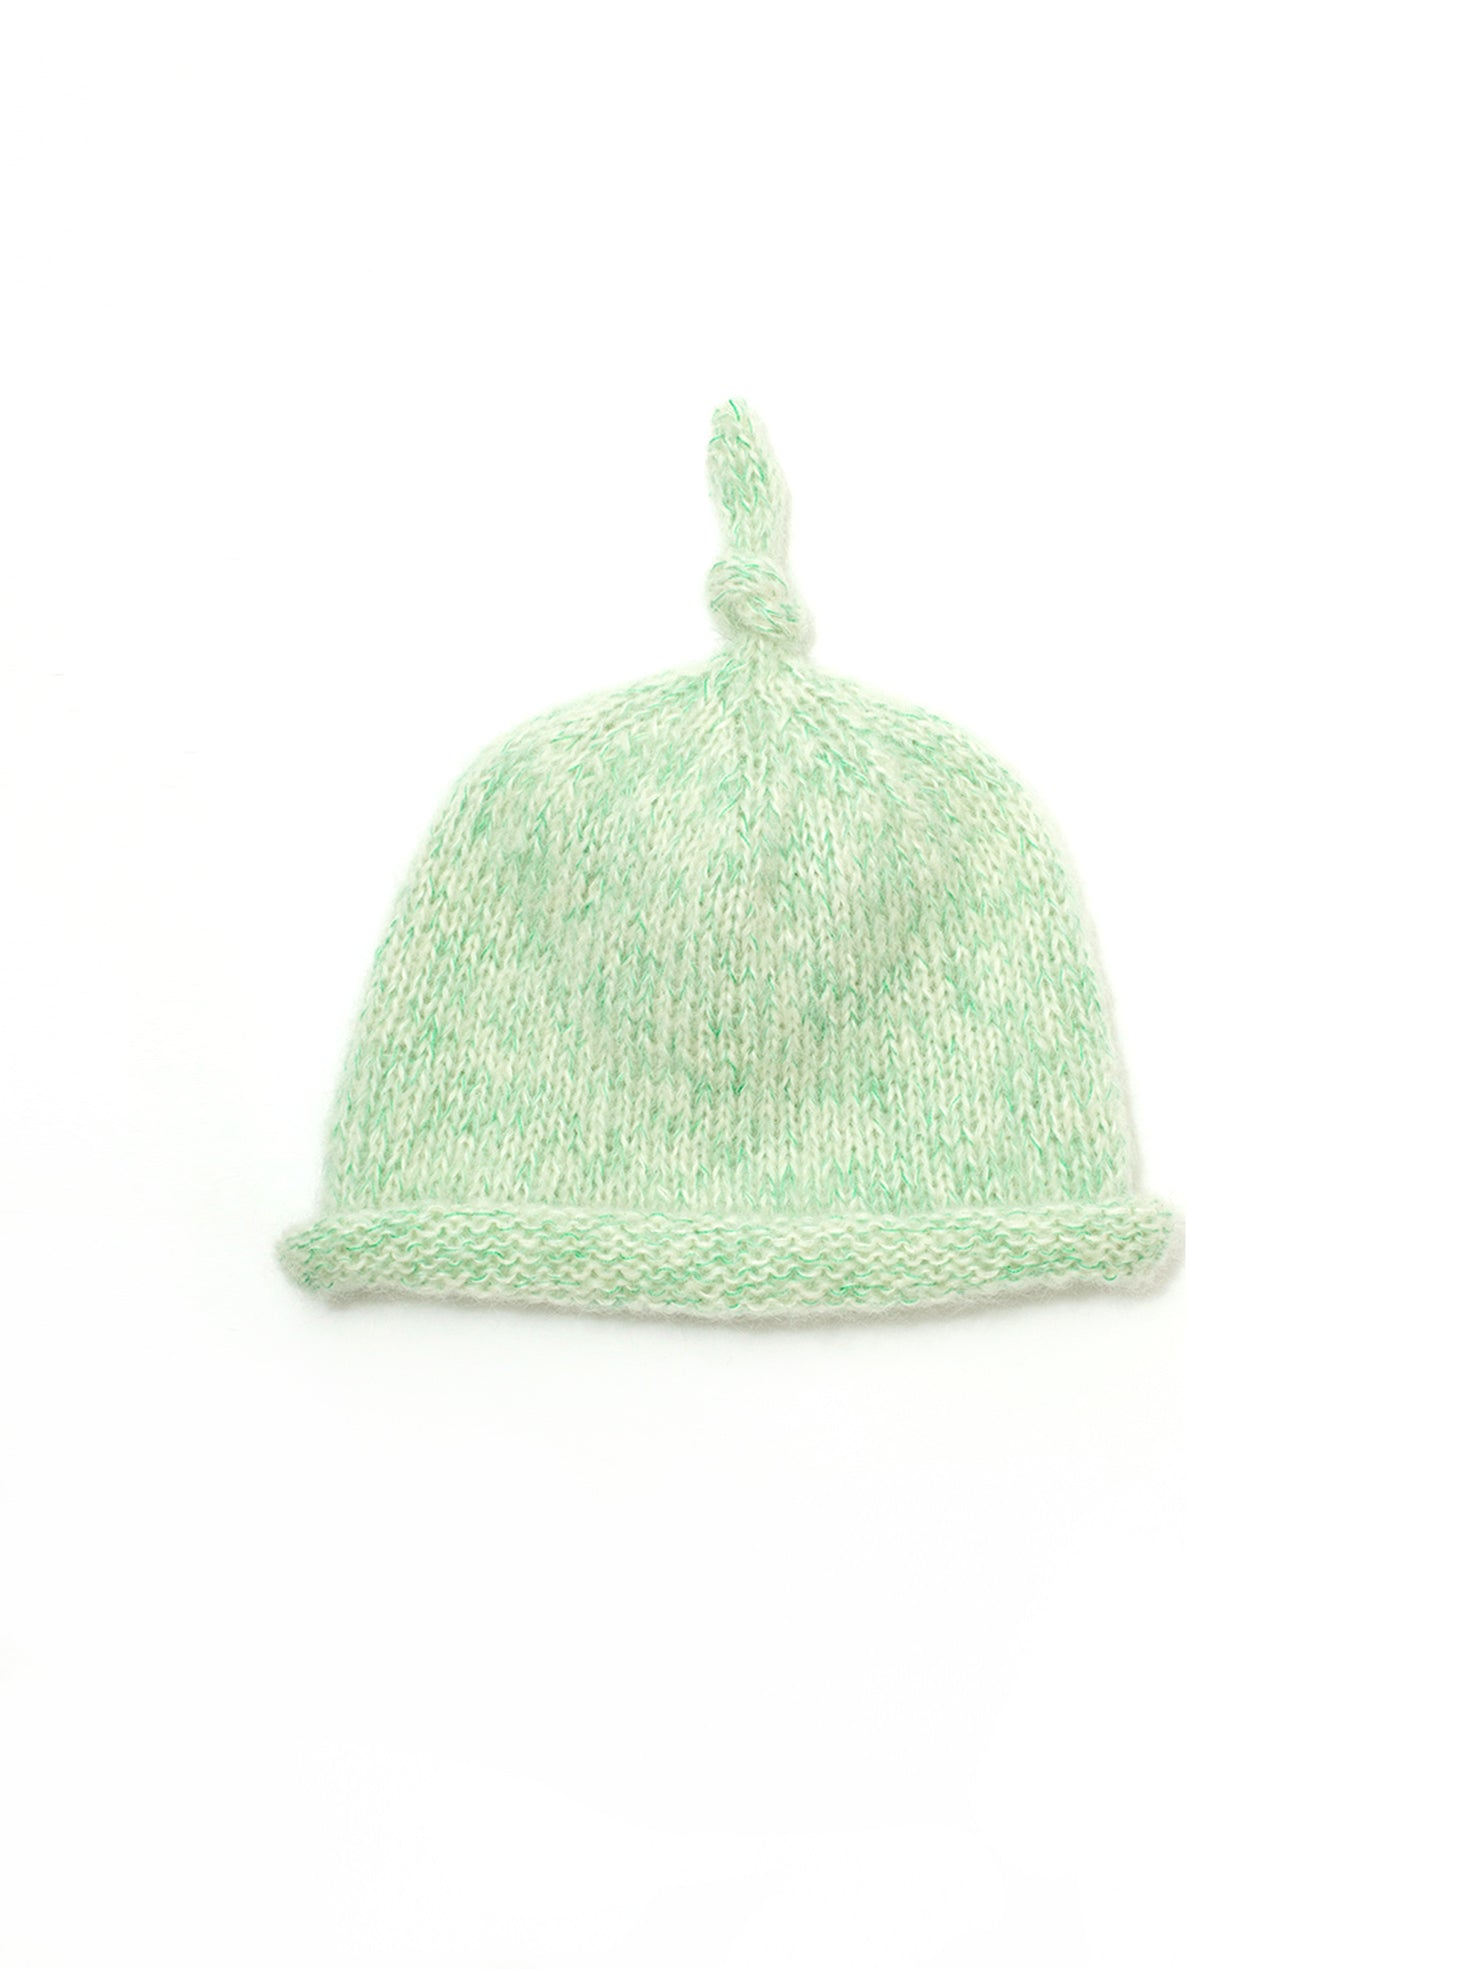 Reality Studio Shan Shan beanie off-white green